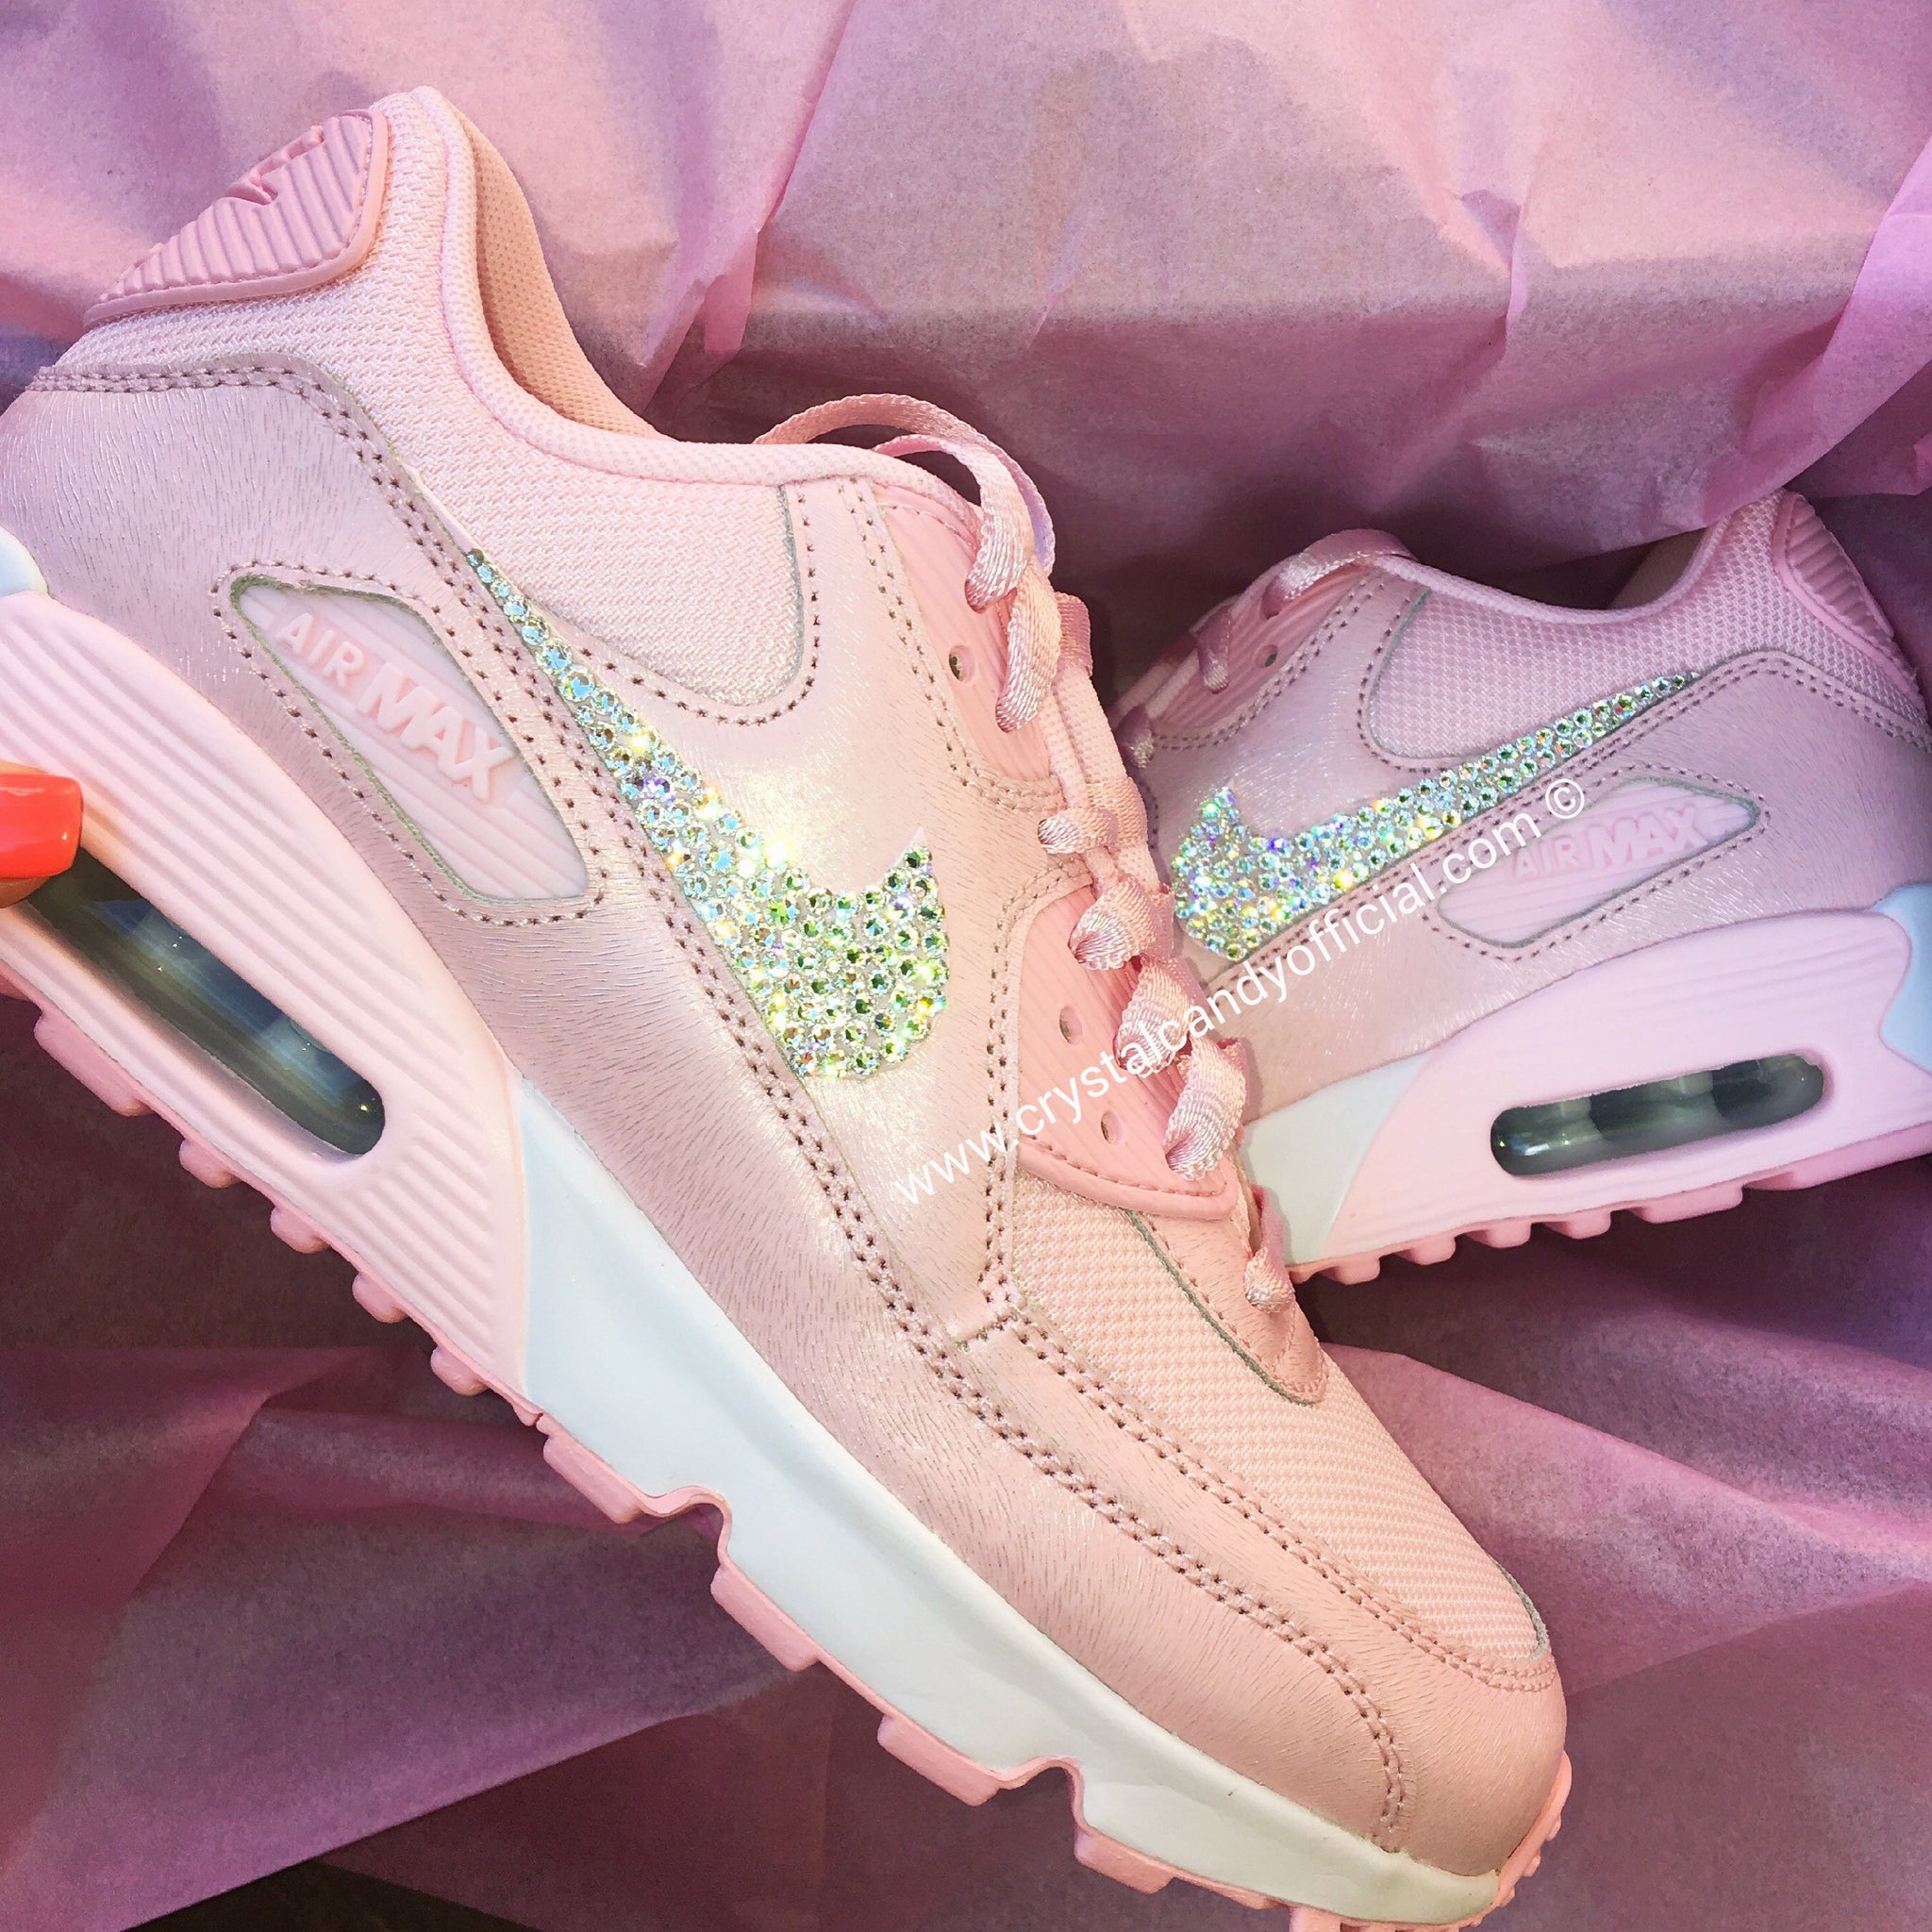 hot sale online 67f21 f8e89 CRYSTAL NIKE AIR MAX 90 s IN BABY PINK - Crystal Candy Limited